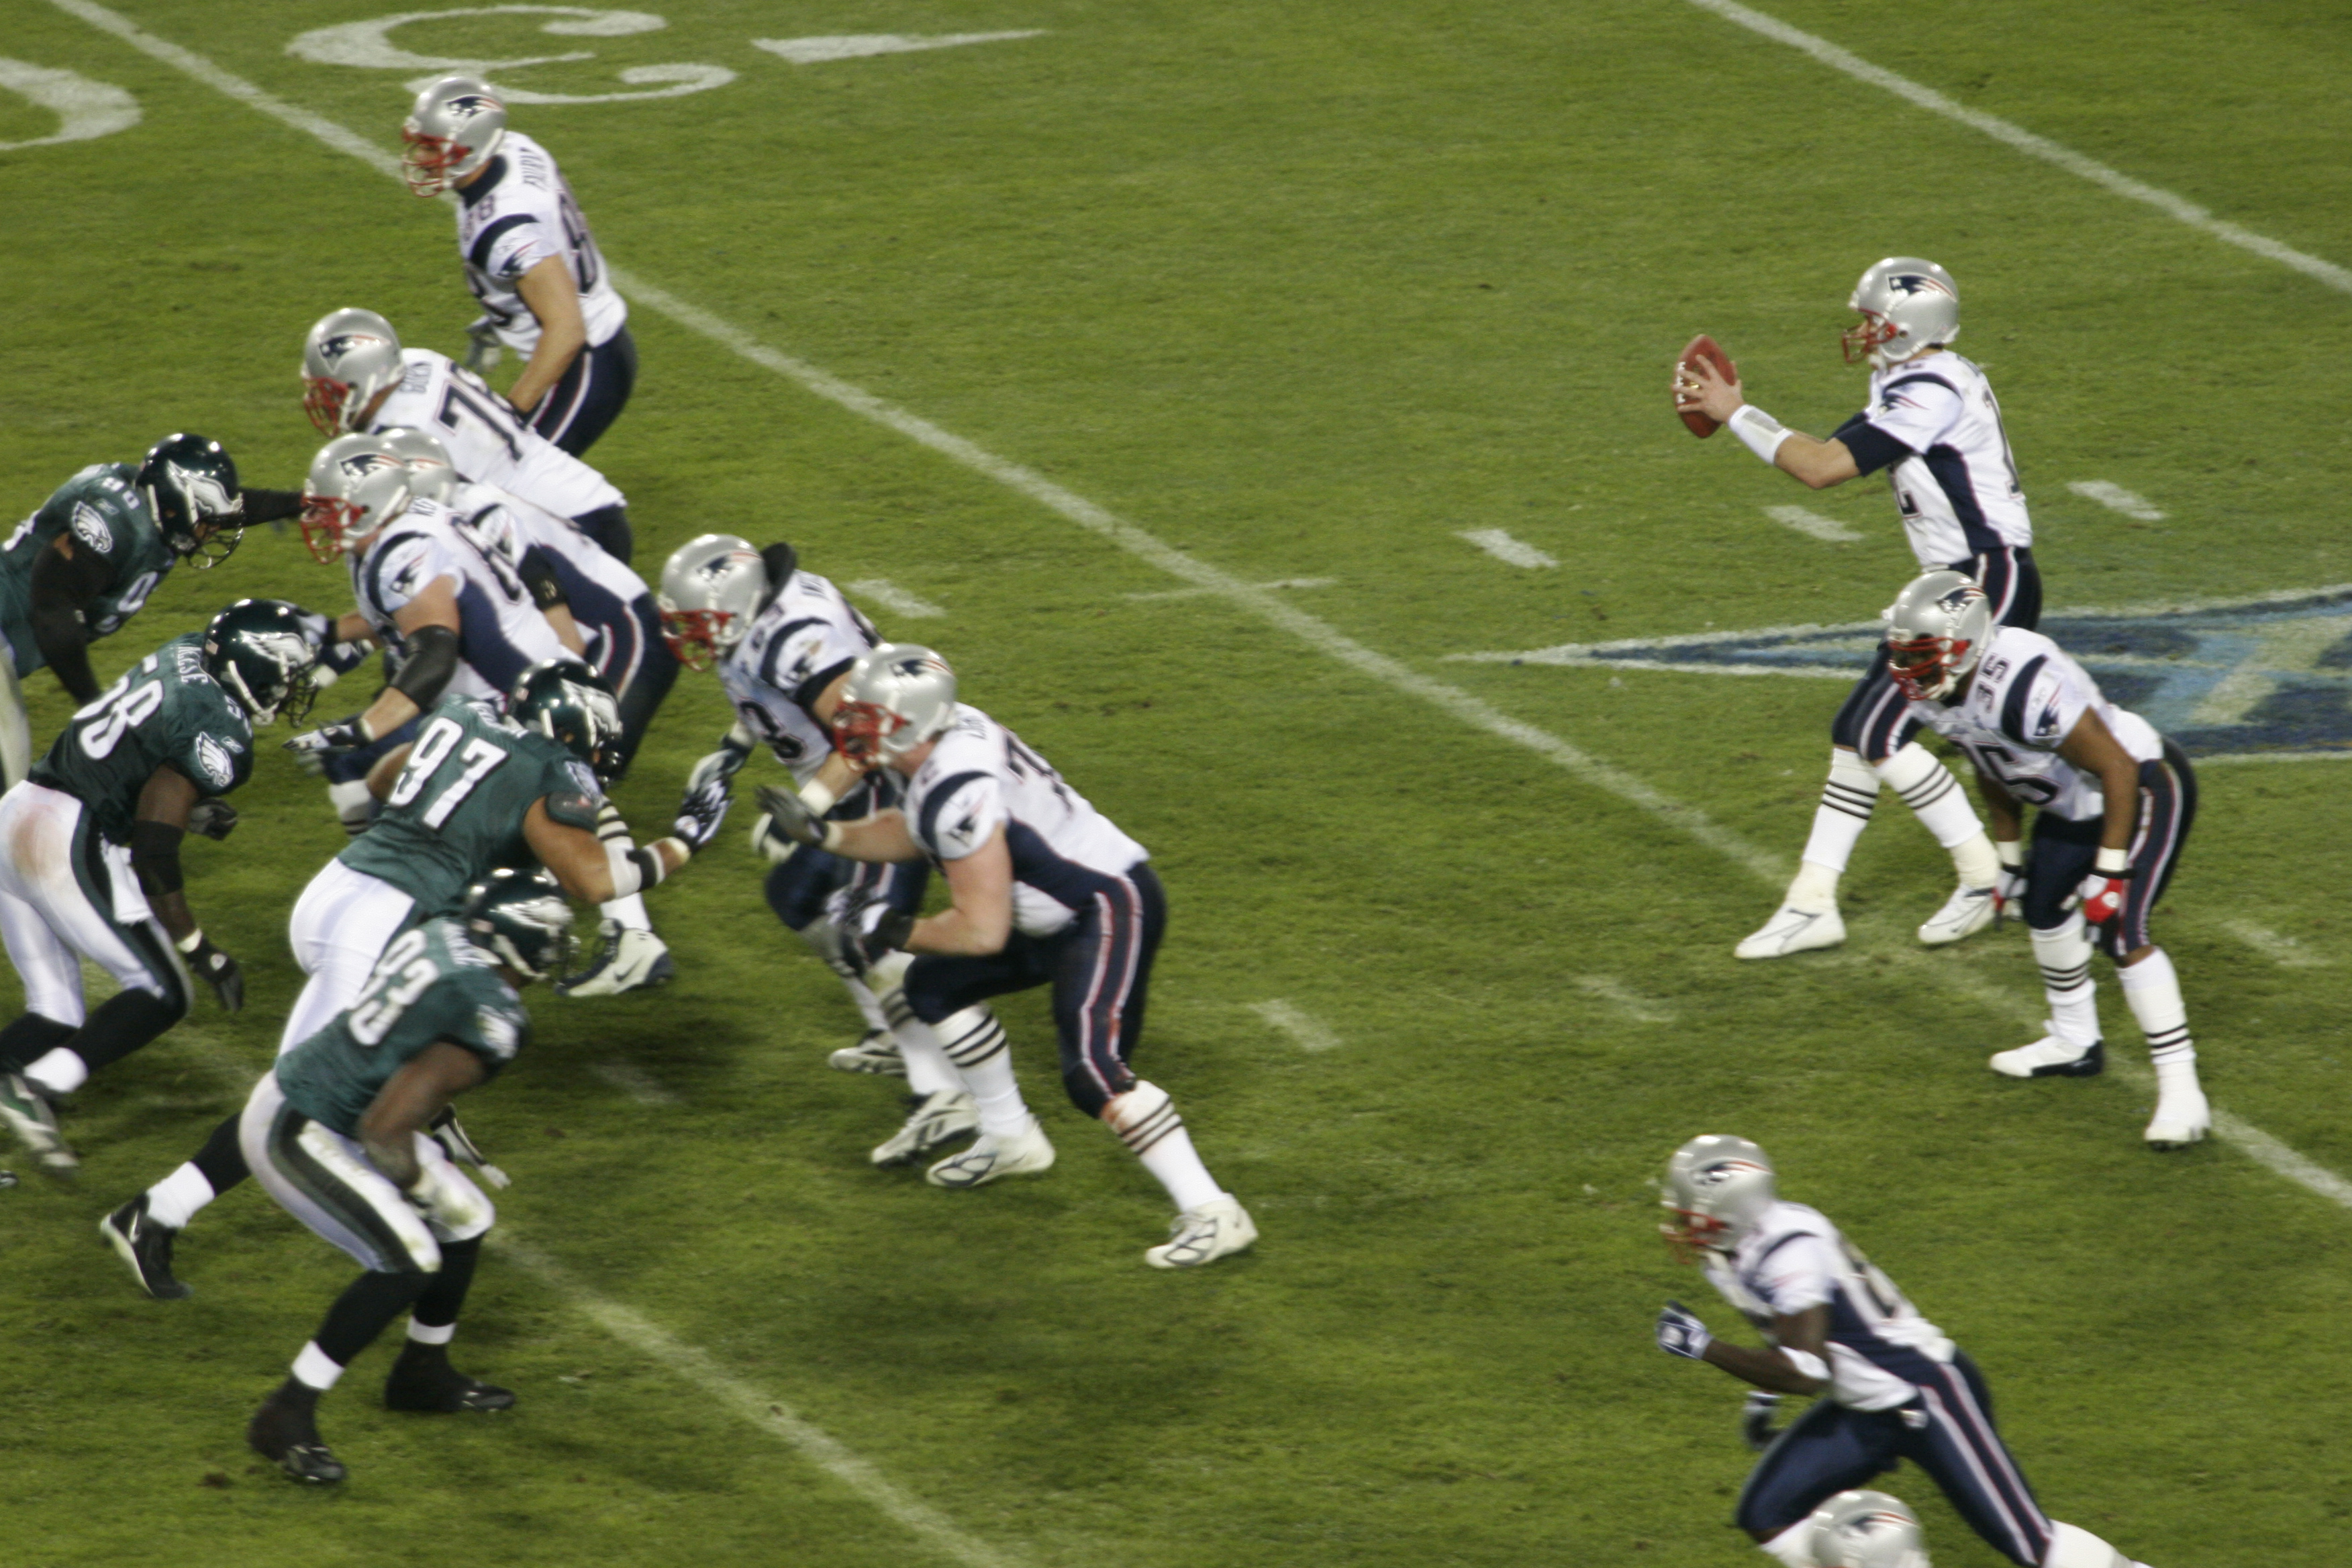 file:patriots on offense at super bowl xxxix 1 - wikimedia commons